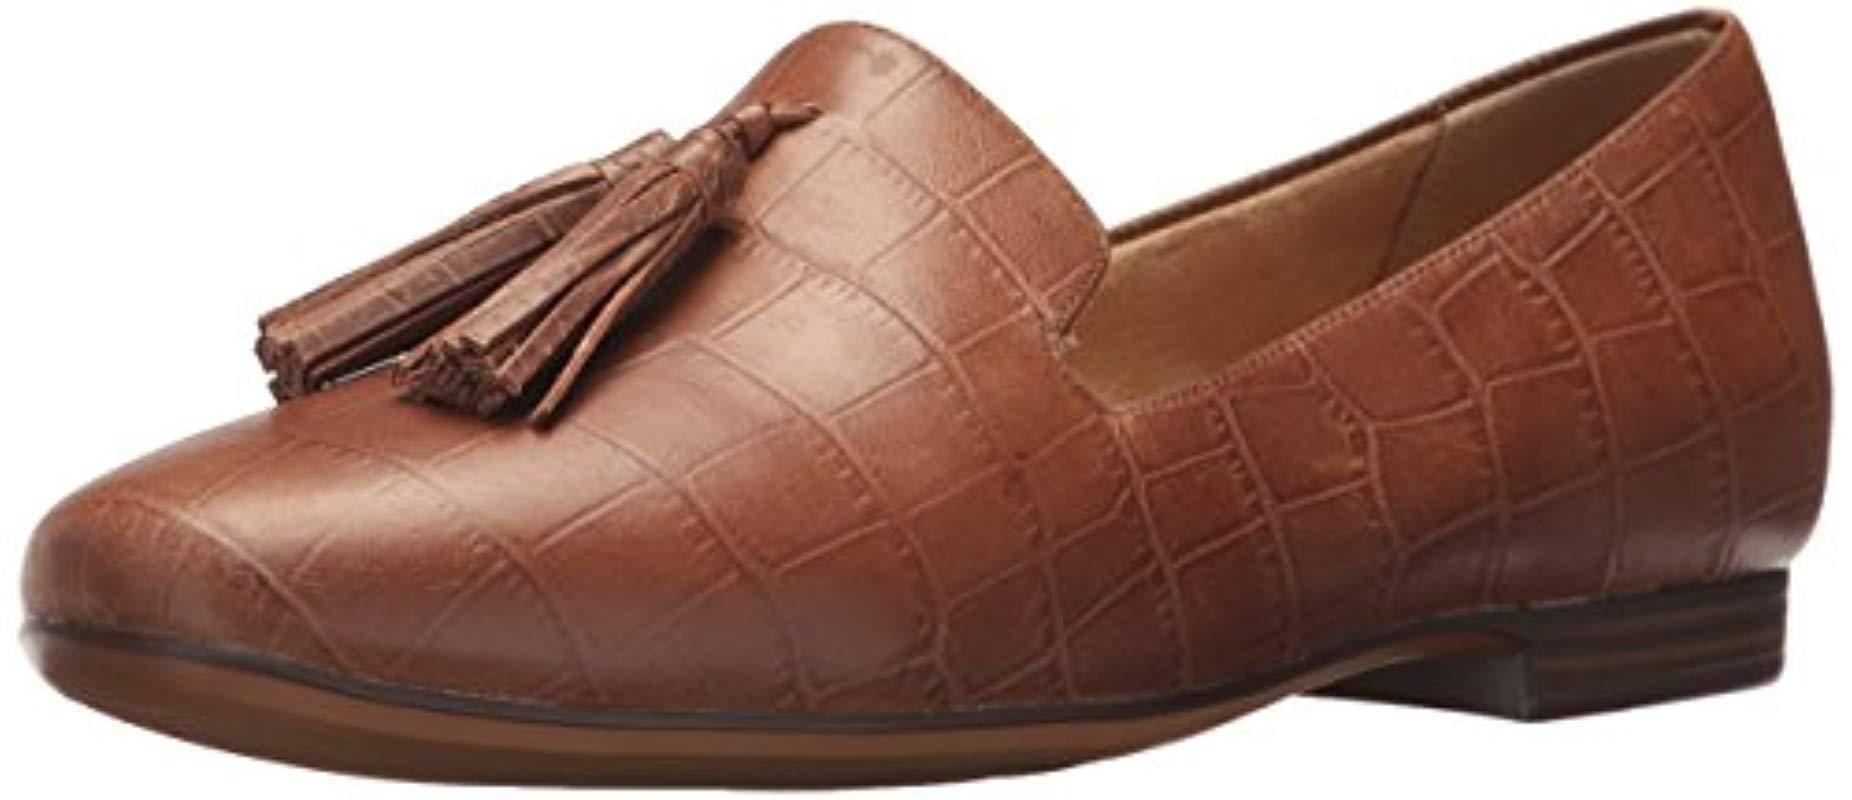 e12715a2ed5 Lyst - Naturalizer Elly Slip-on Loafer in Brown